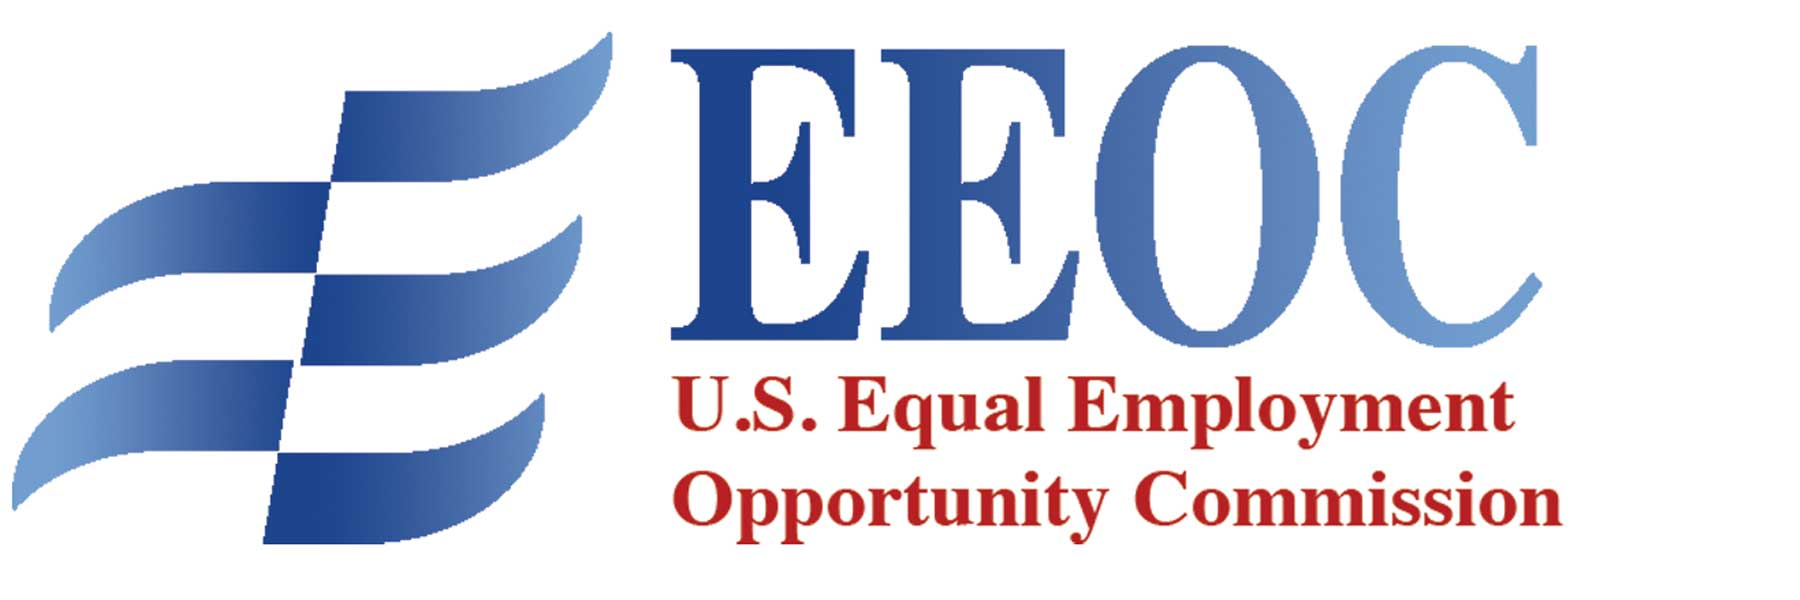 Essays on equal employment opportunity commission